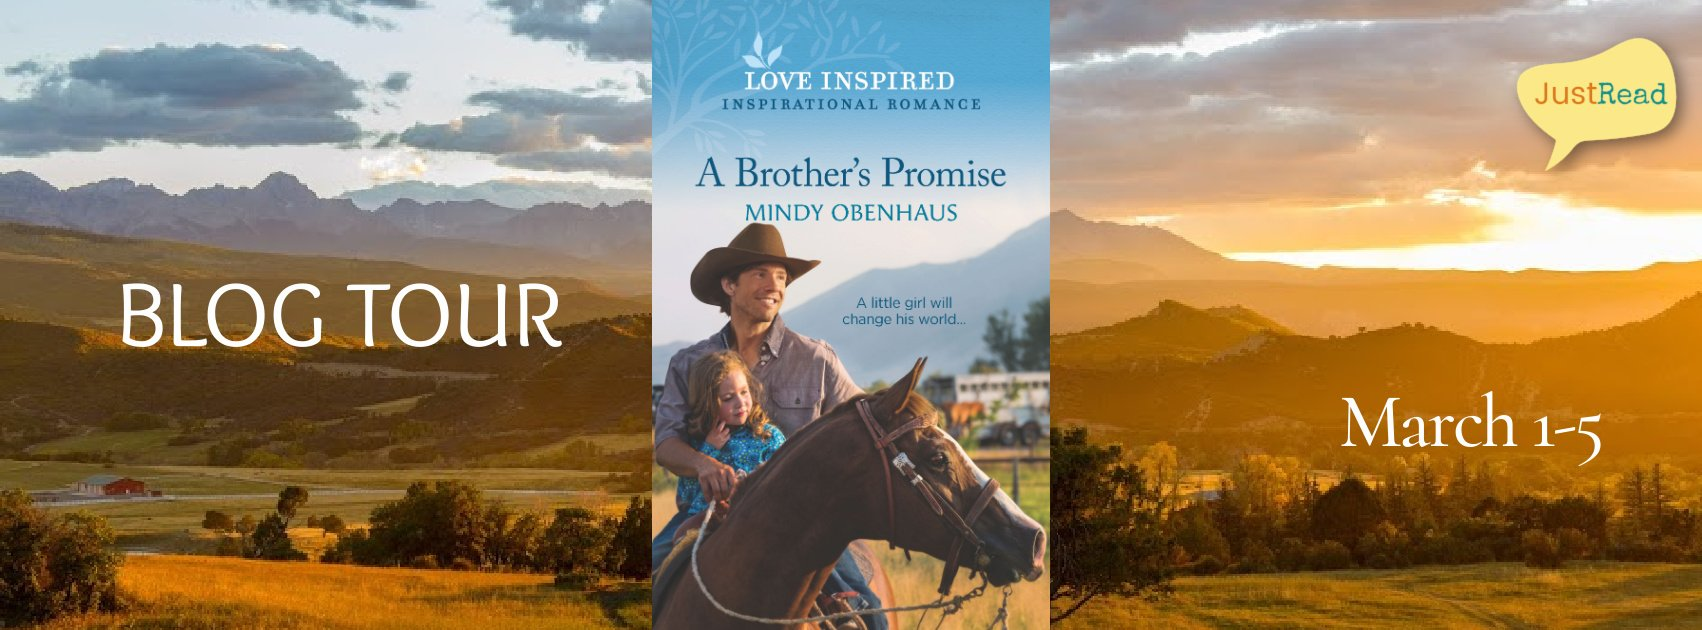 A Brother's Promise JustRead Blog Tour